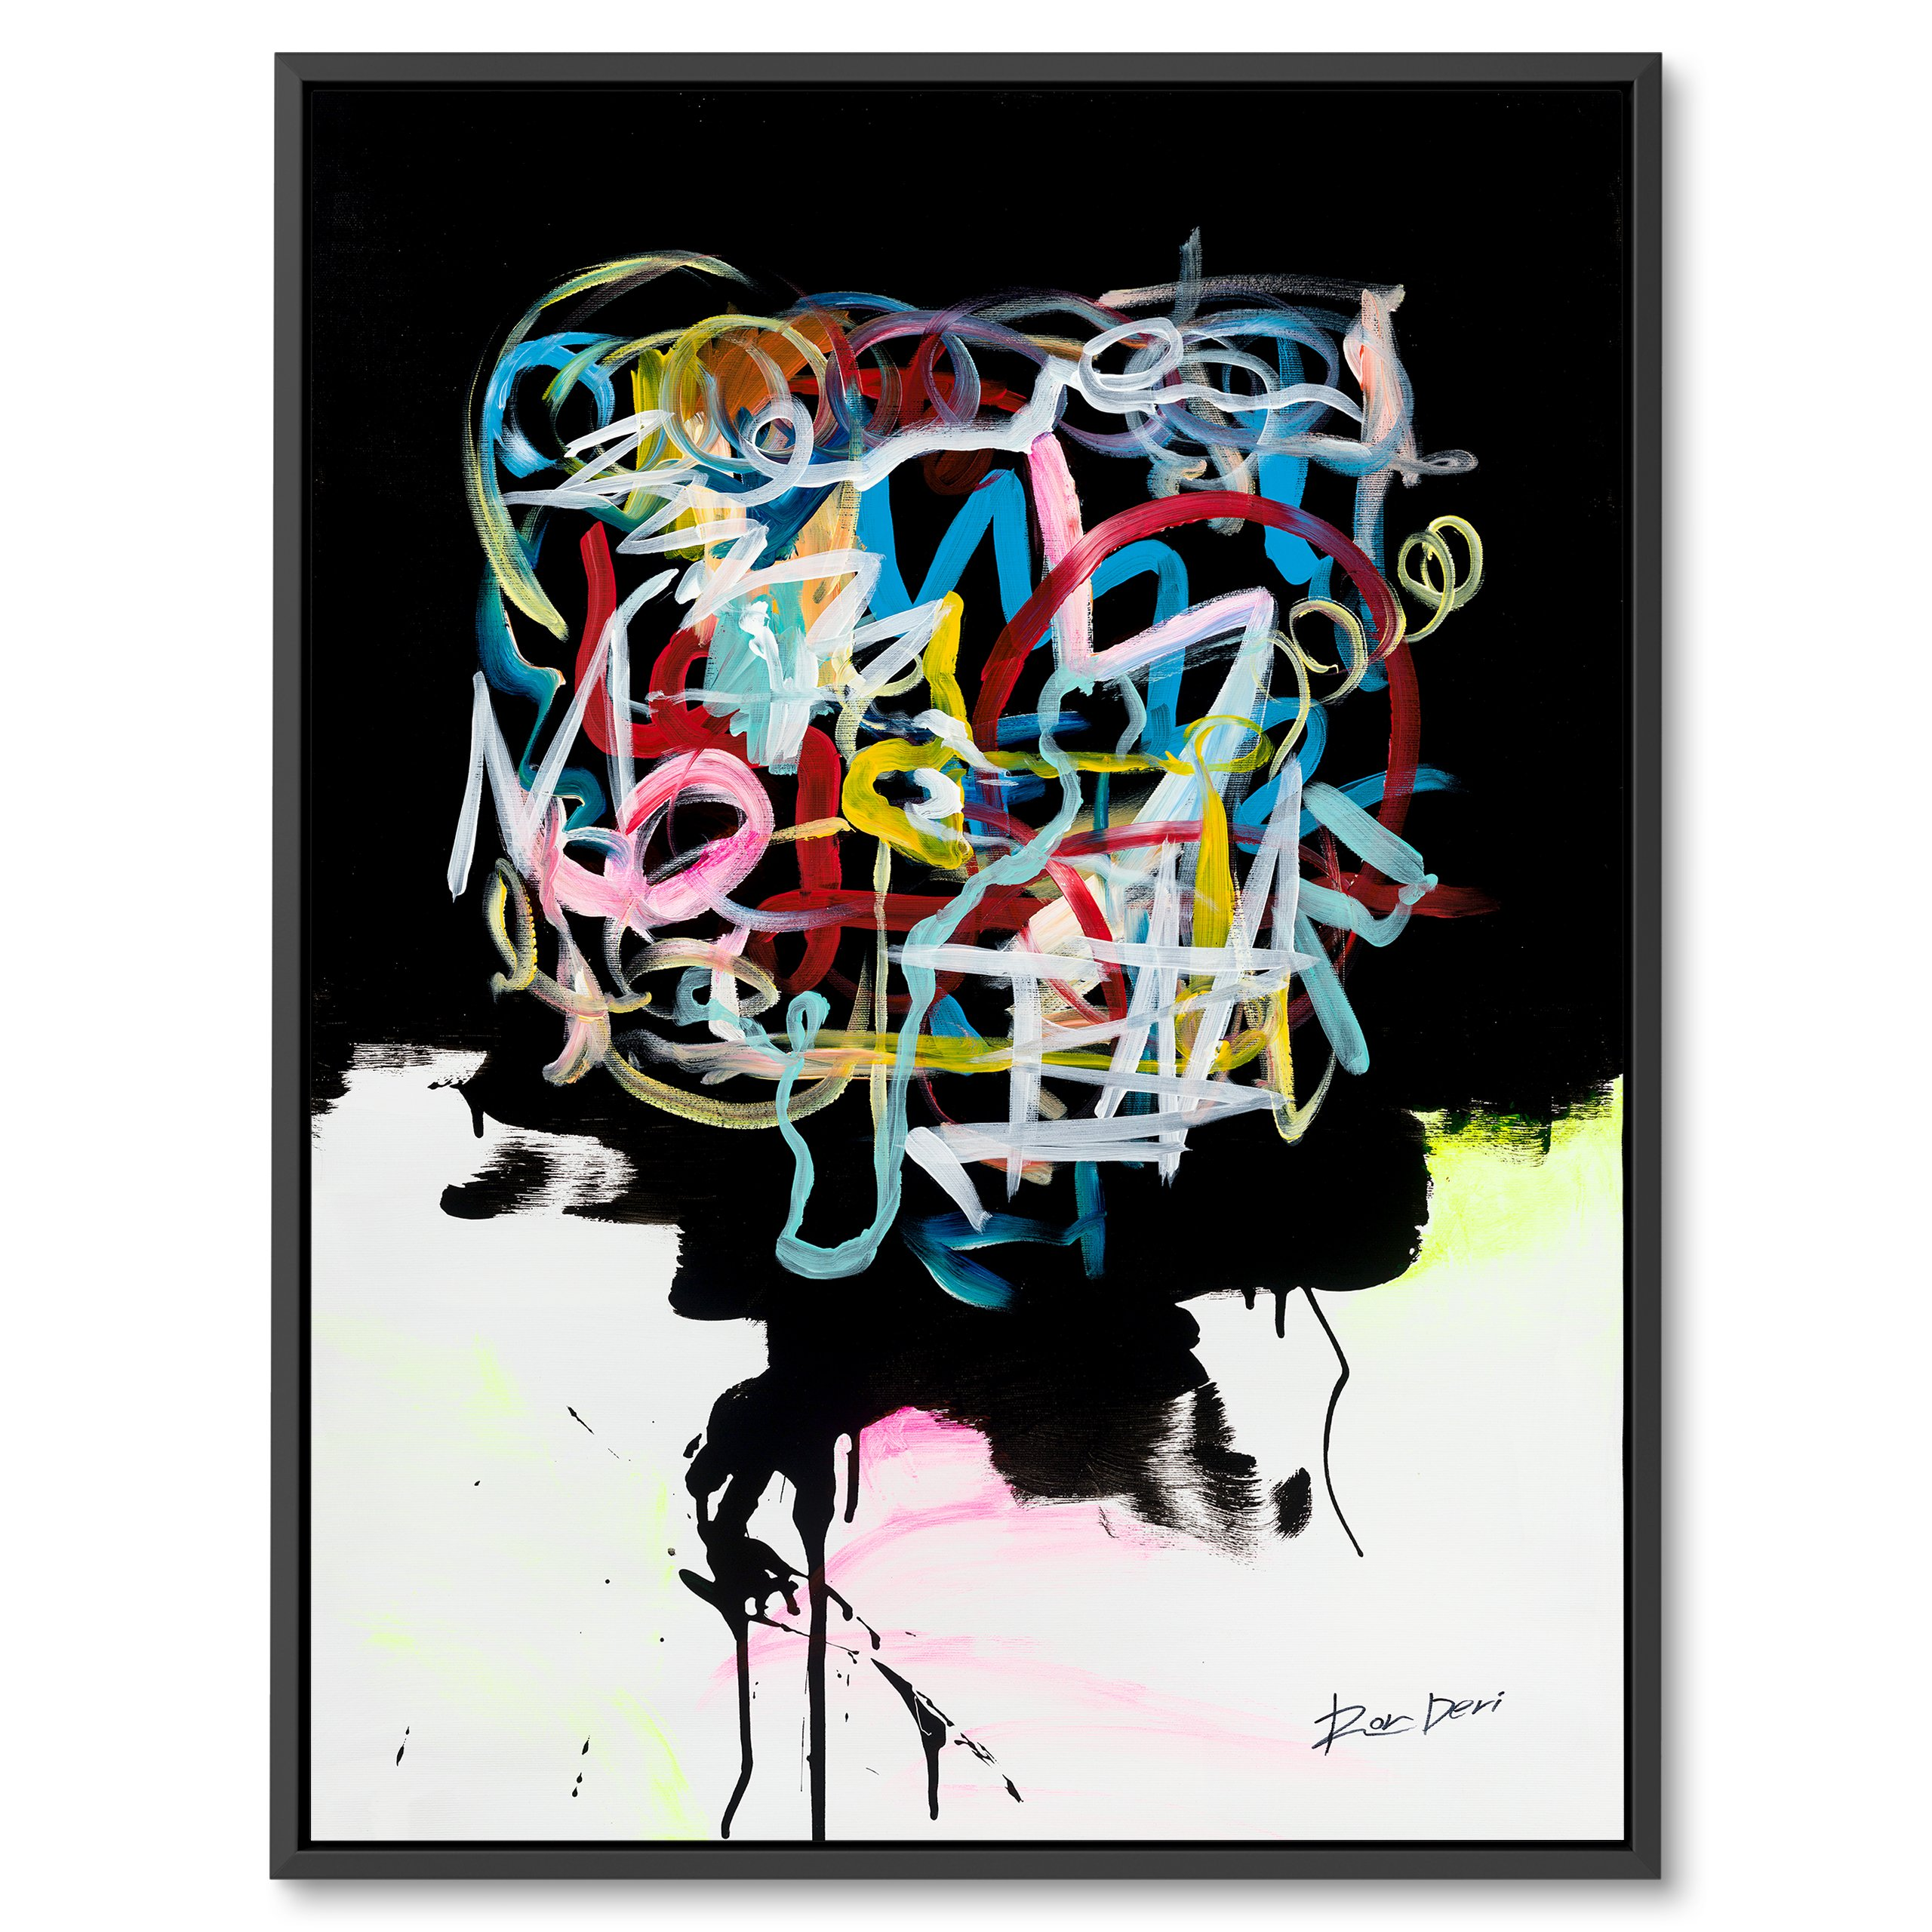 Human brain, Colorful abstract art by Ron Deri